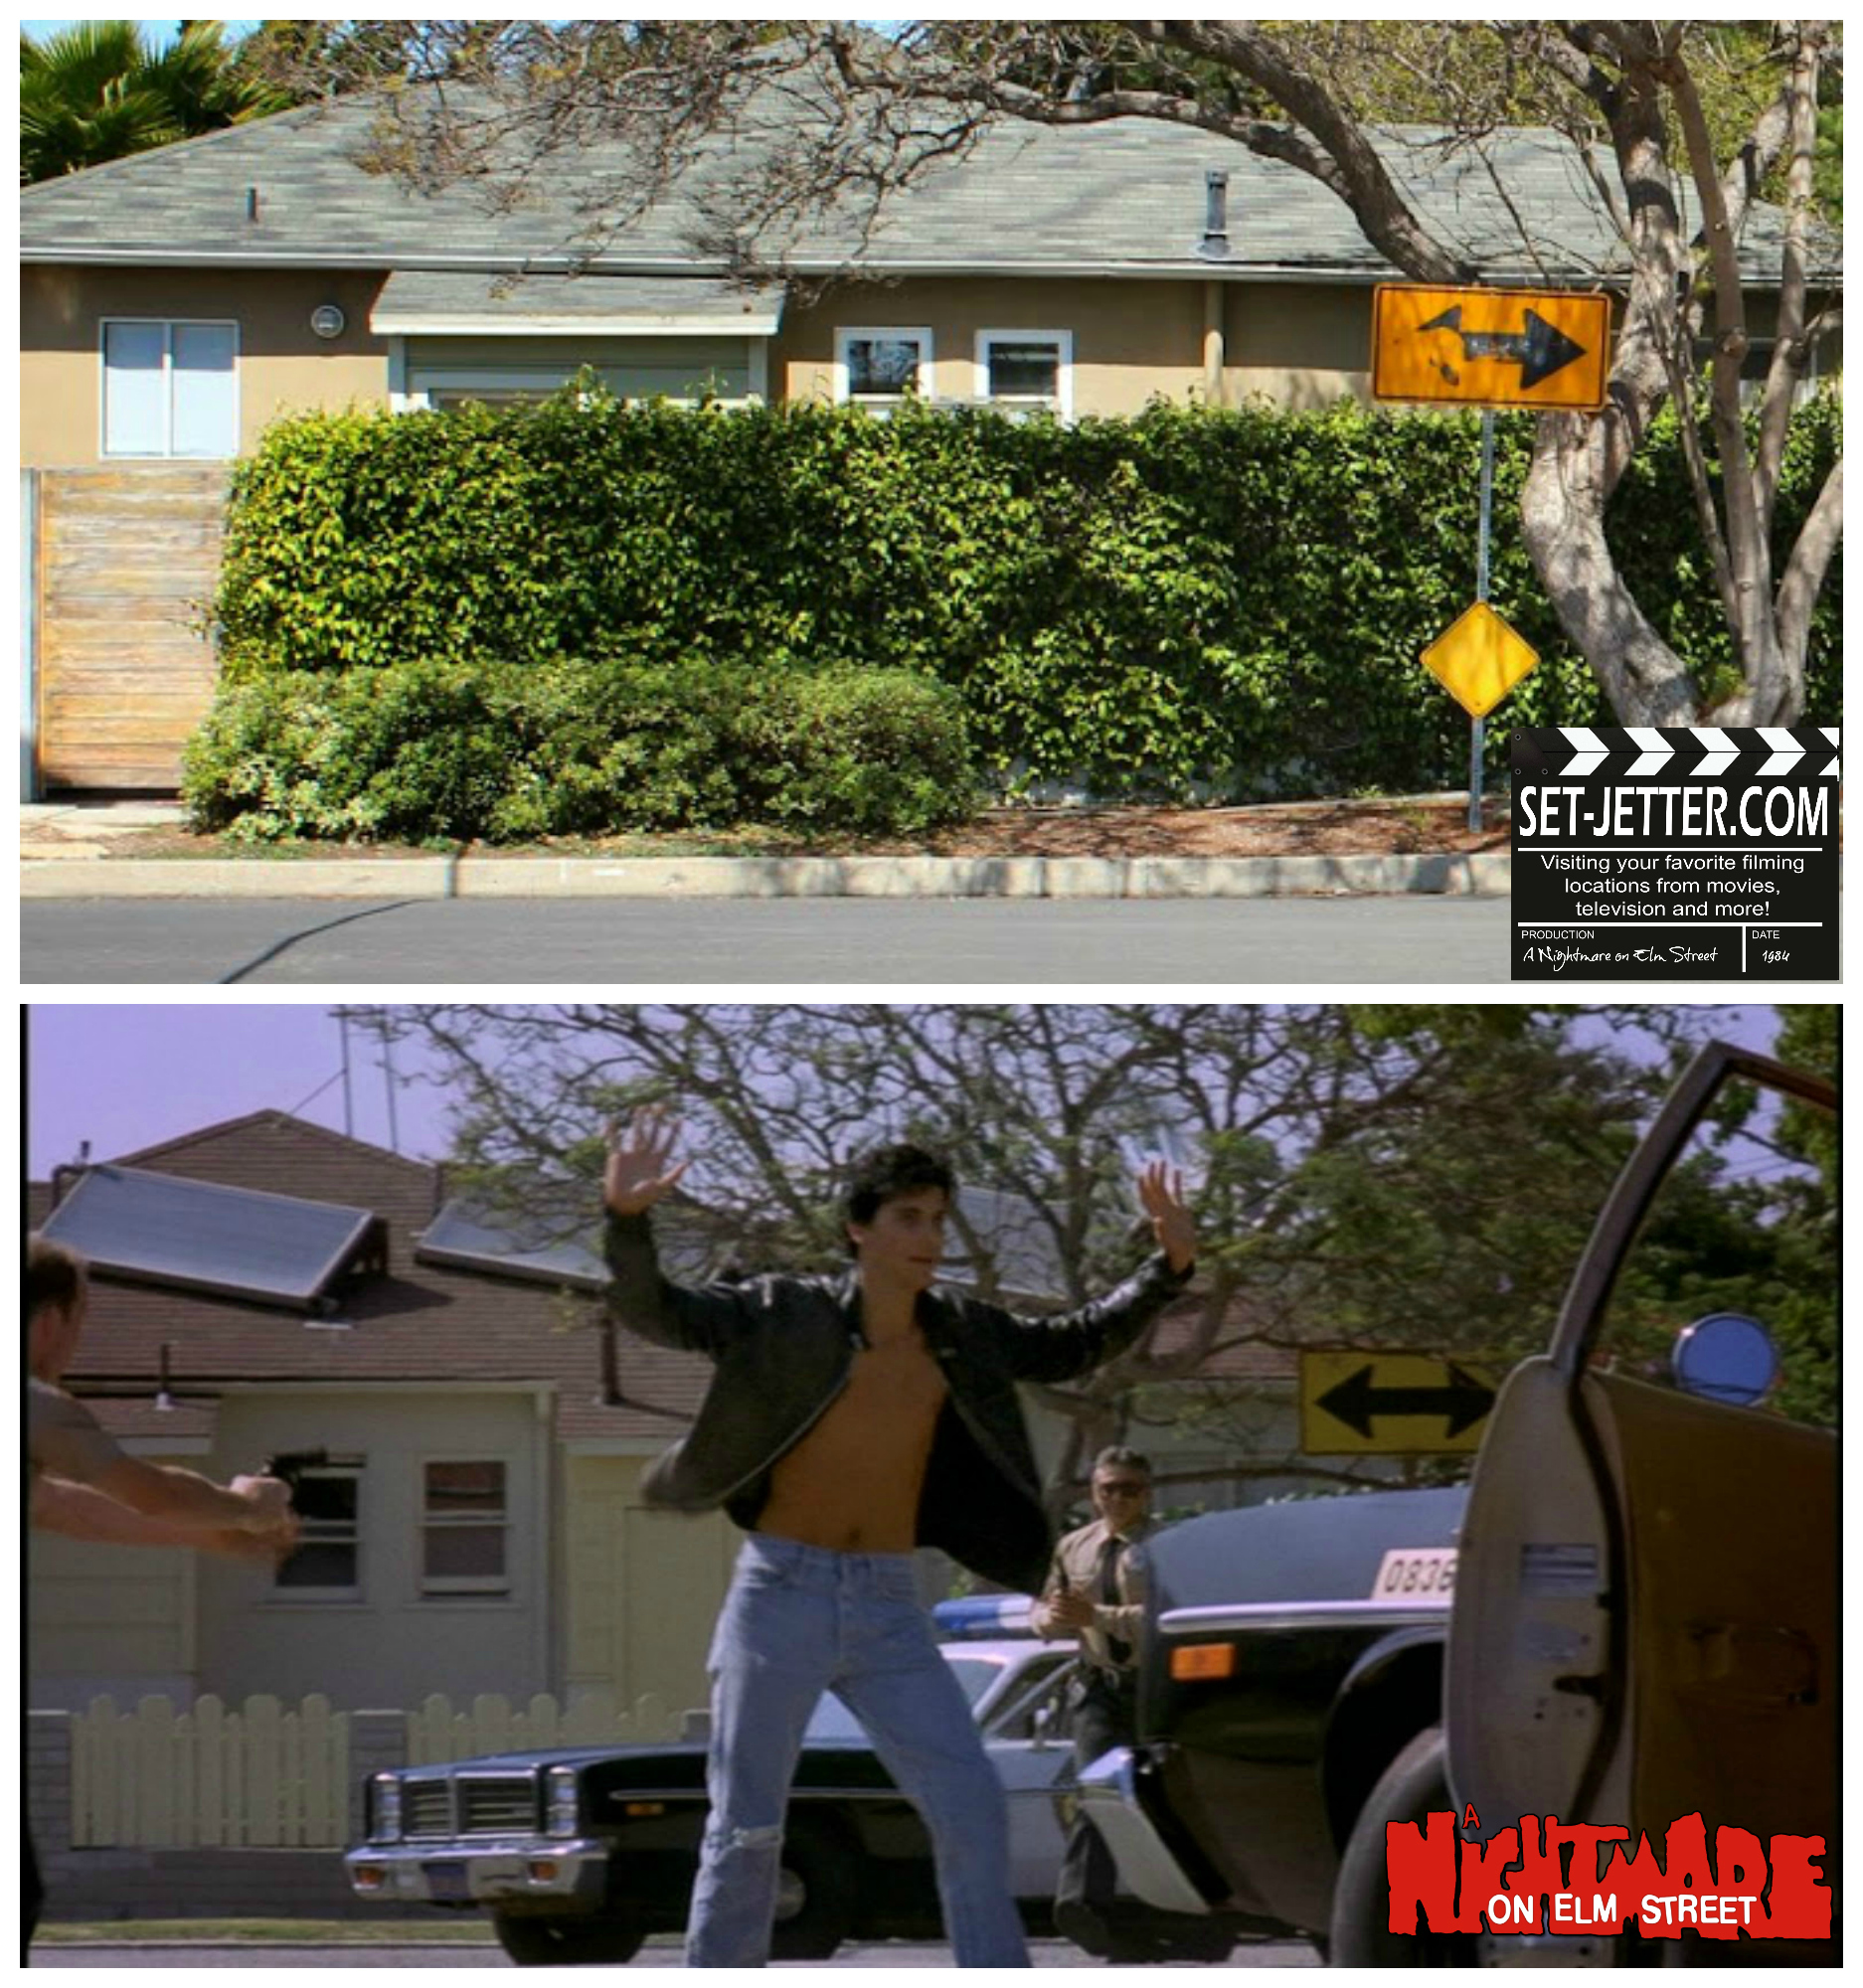 Nightmare on Elm Street comparison 20.jpg